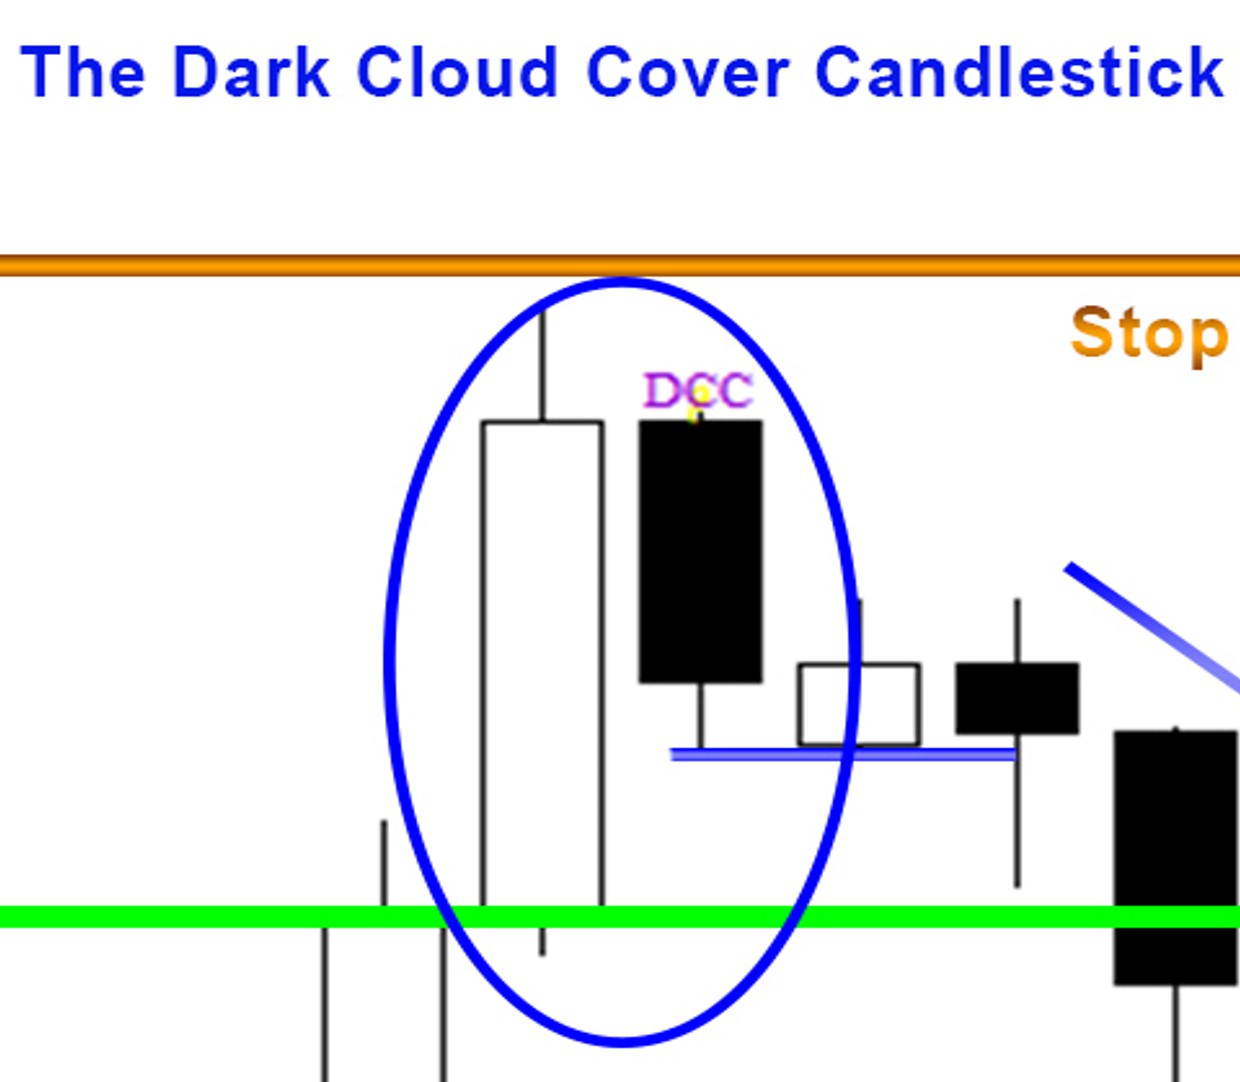 Candlestick Patterns - Dark Cloud Cover 1 up close